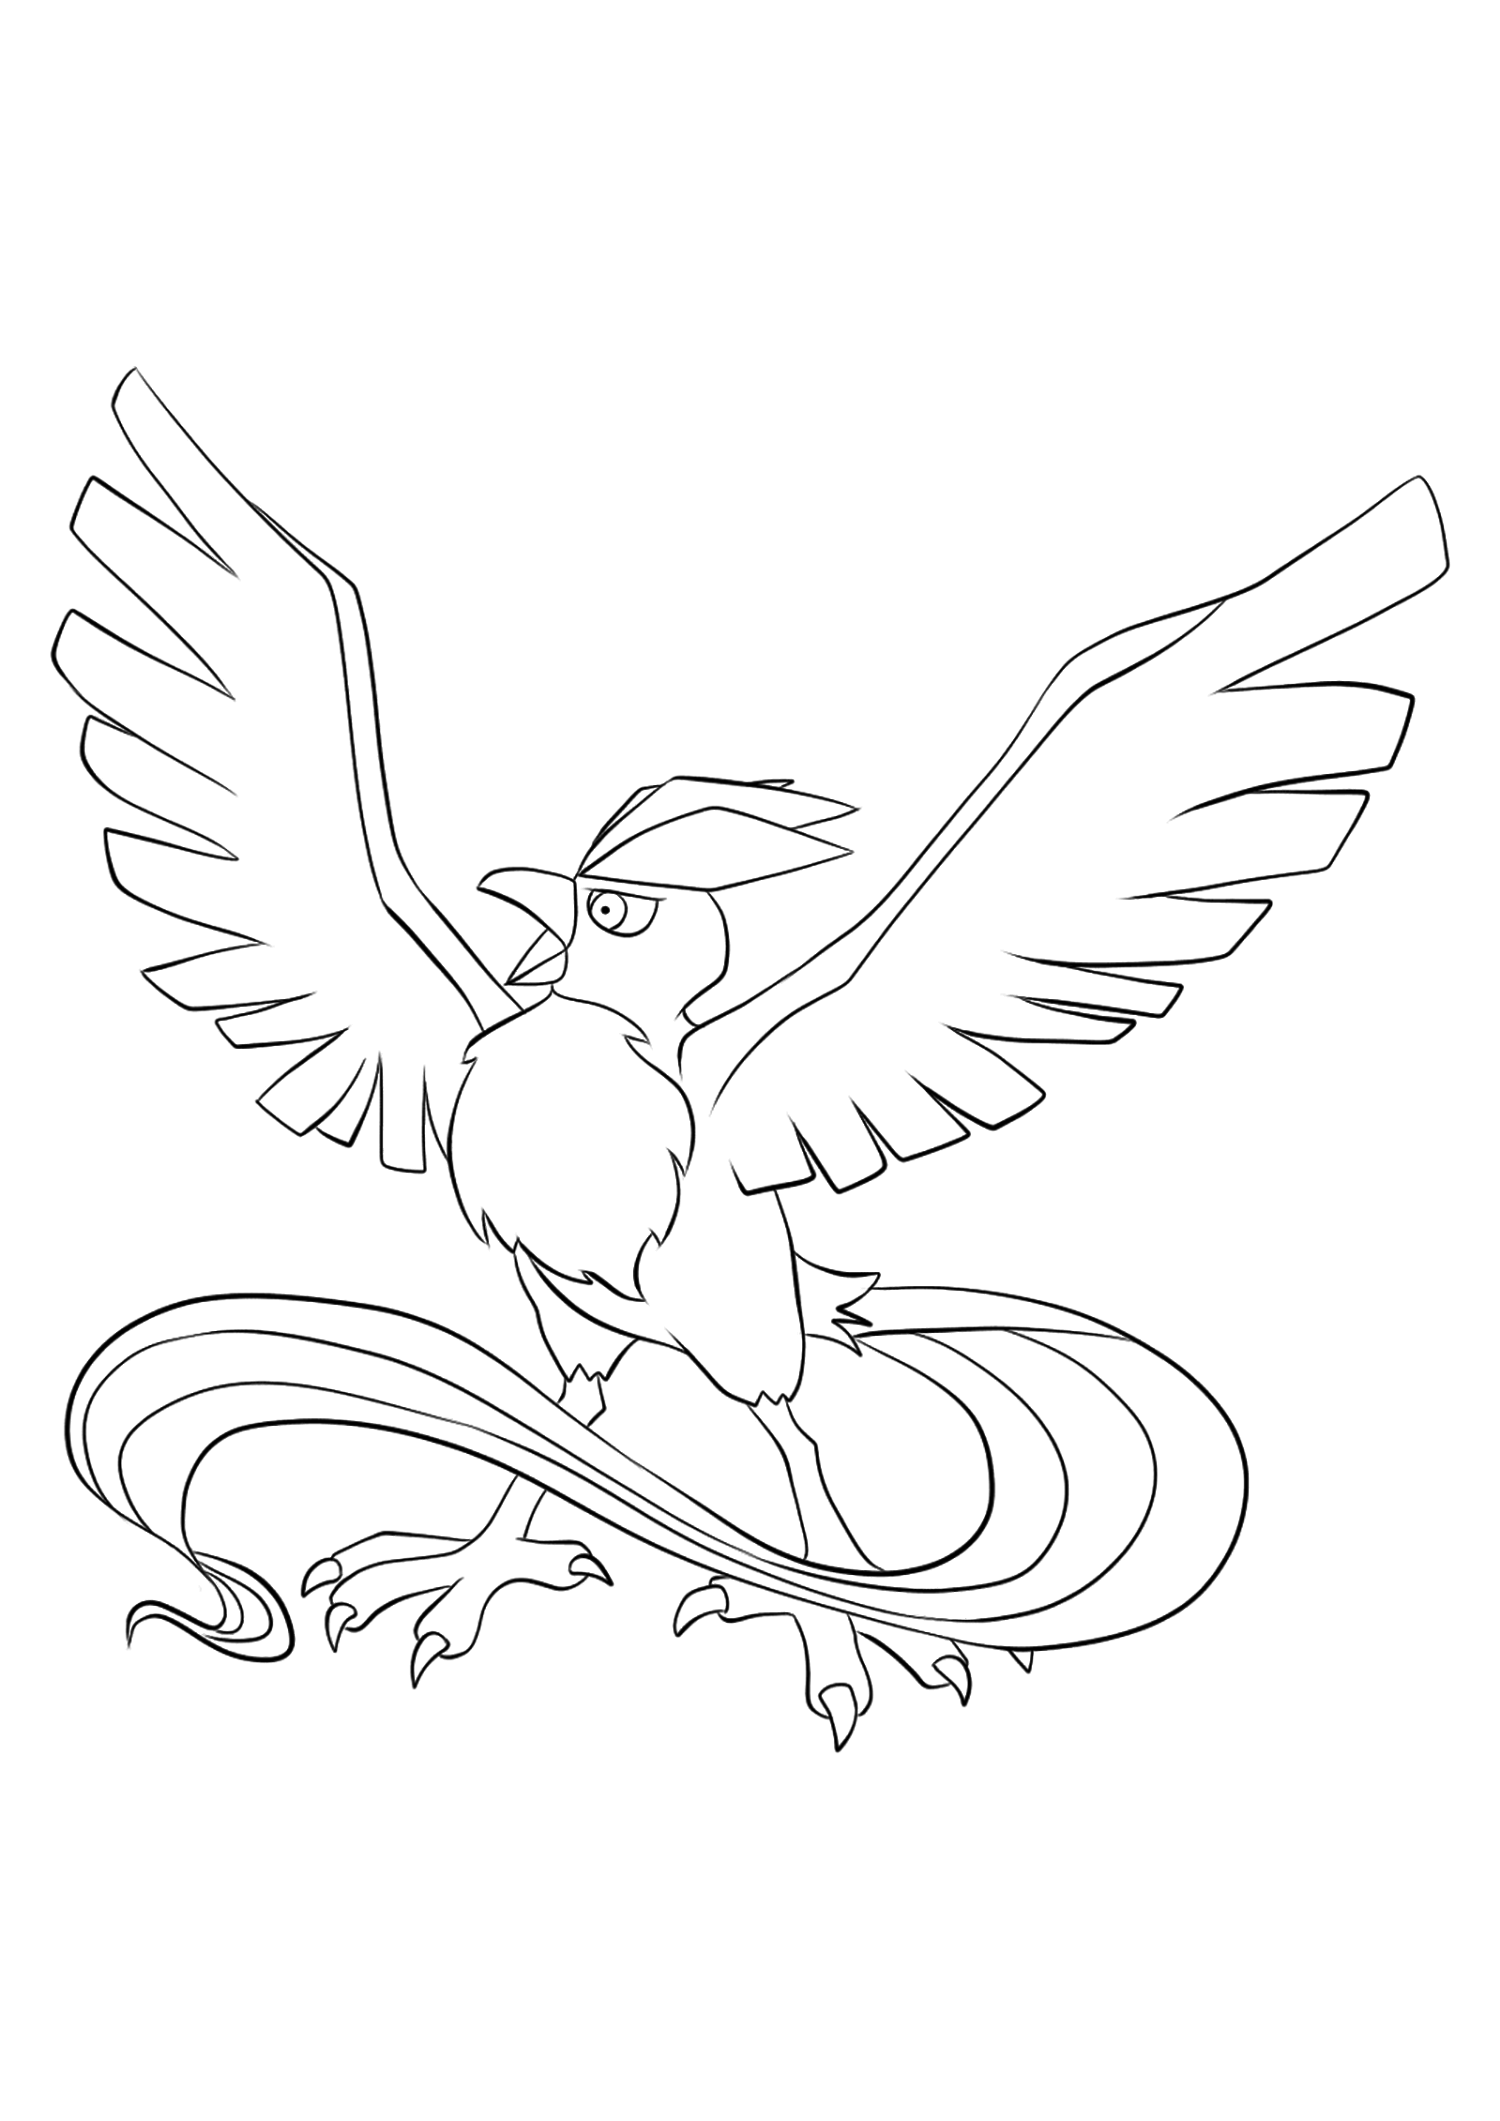 Articuno (No.144)Articuno Coloring page, Generation I Pokemon of type Ice and FlyingOriginal image credit: Pokemon linearts by Lilly Gerbil on Deviantart.Permission:  All rights reserved © Pokemon company and Ken Sugimori.